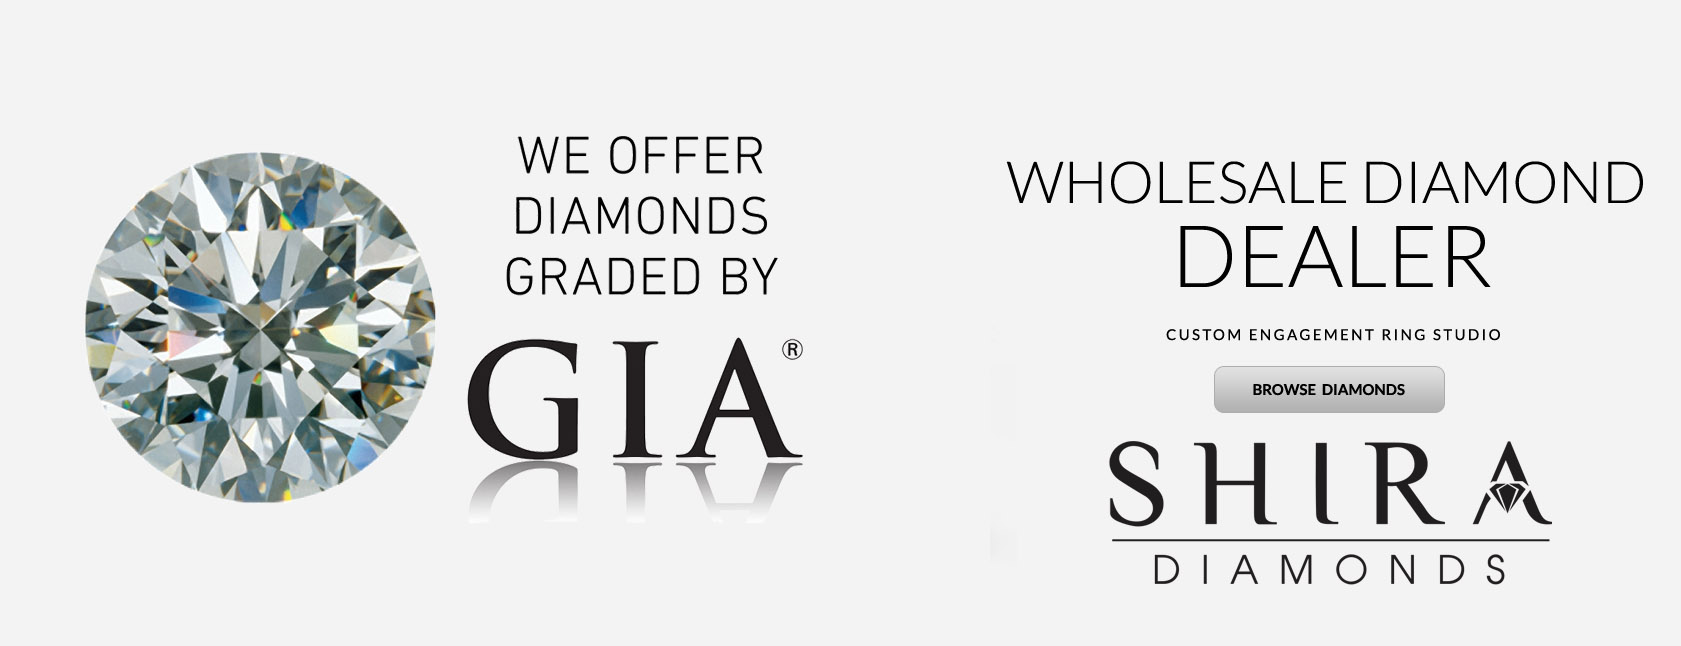 Shira Diamonds Dallas reviews | Jewelry at 18333 Preston Rd. - Dallas TX